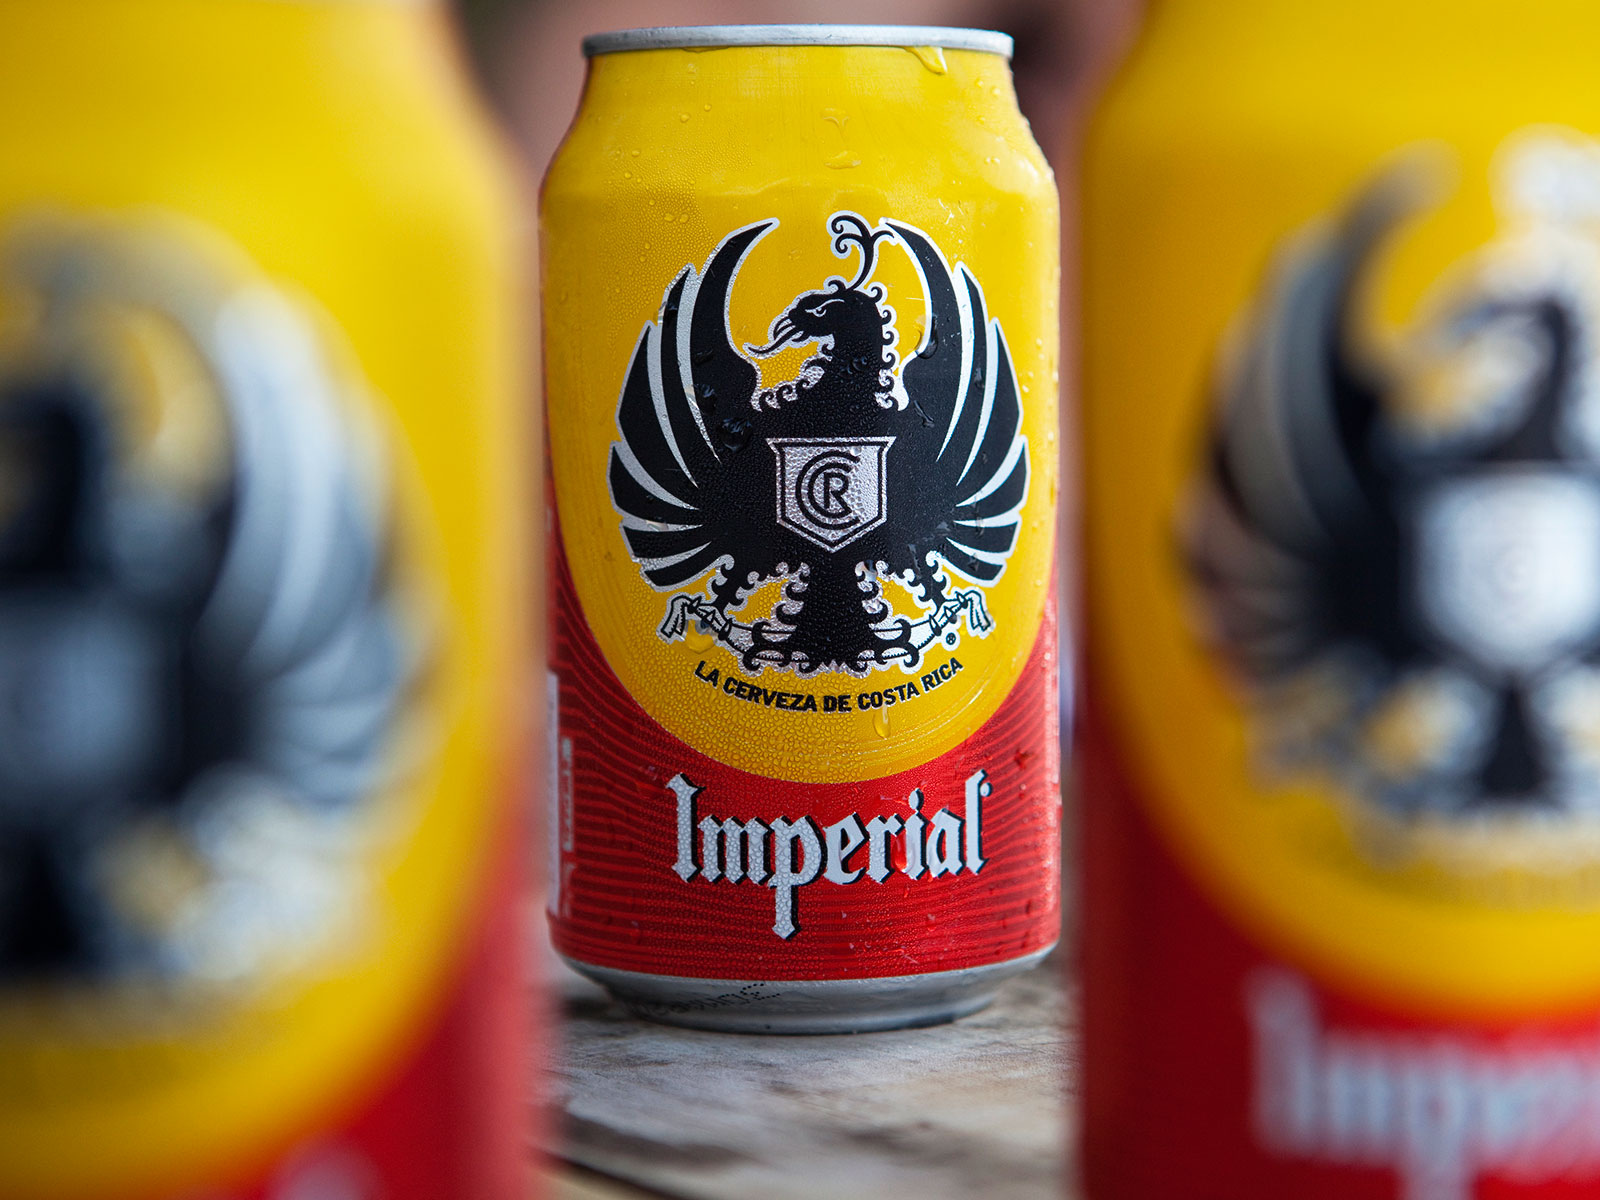 Costa Rica's 'Water Positive Beer' Is Now on Tap in the U.S.